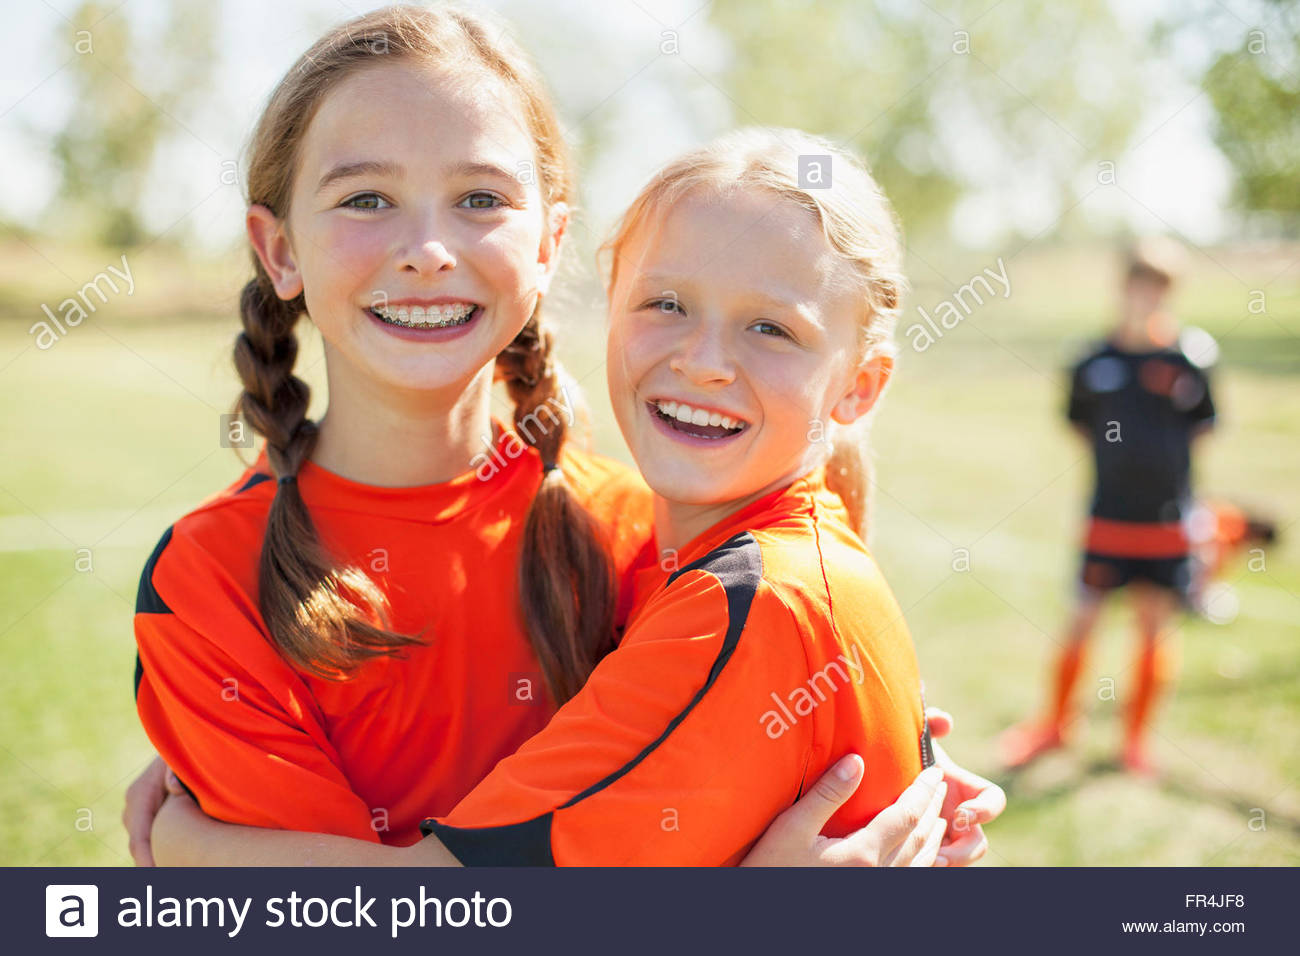 Girl soccer players smiling and hugging. - Stock Image